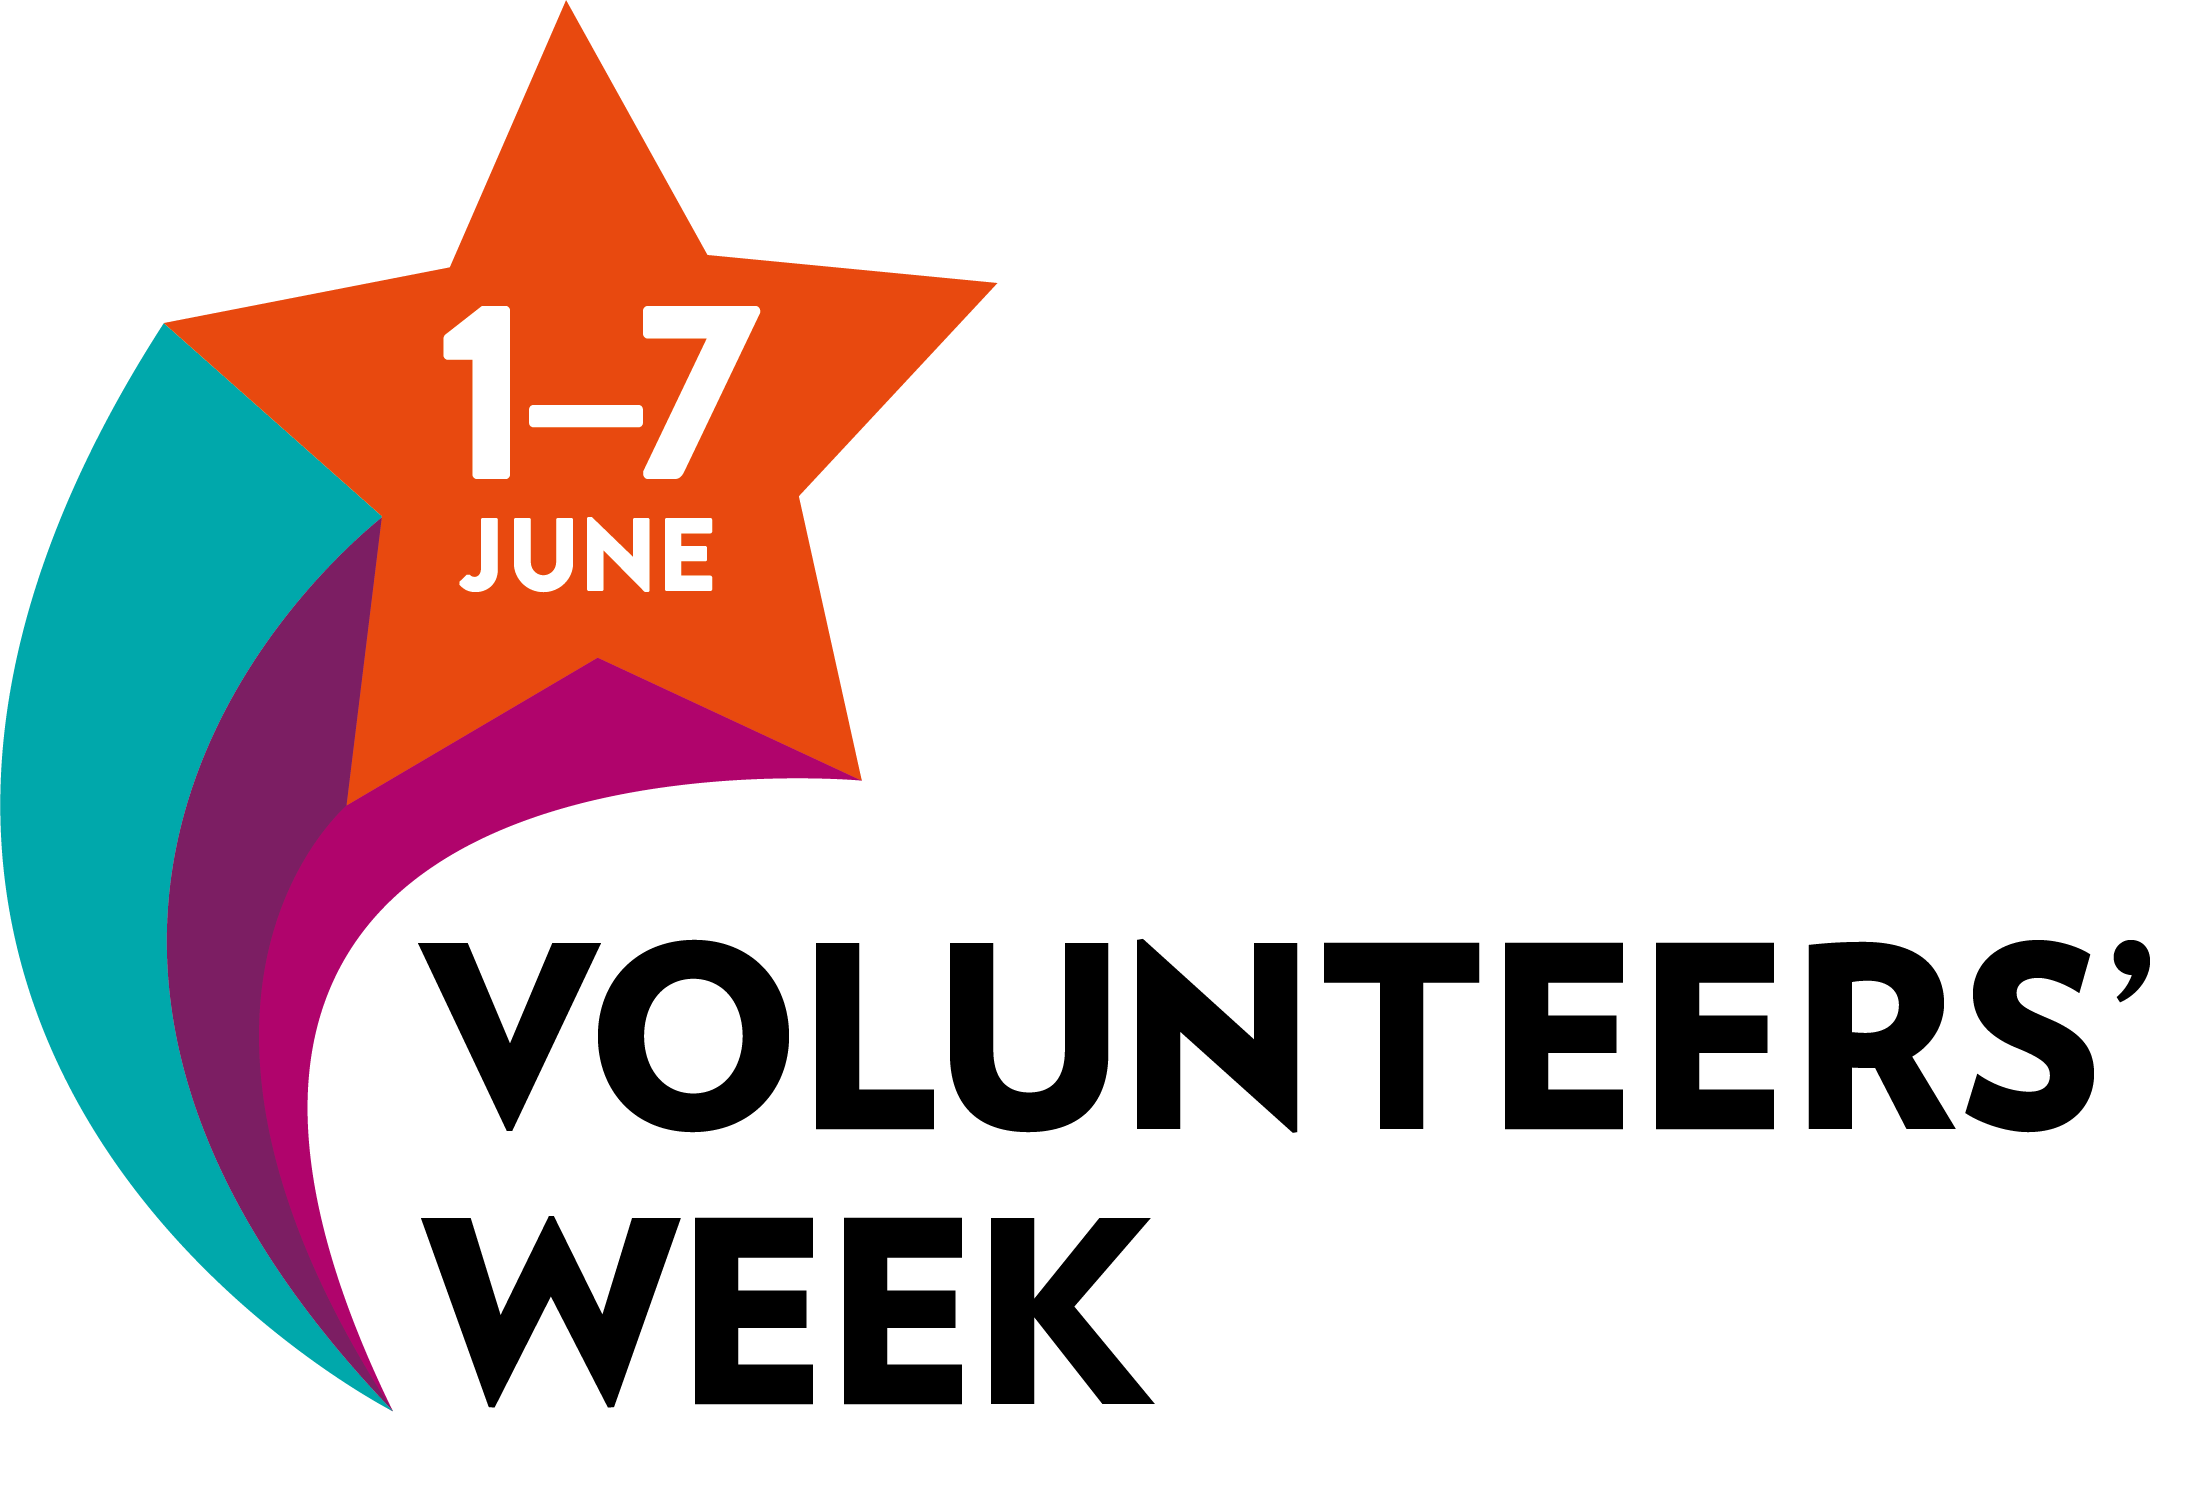 Volunteers' Week is an annual campaign, which takes place every year 1 - 7 June. Charities across the UK will hold events to thank their volunteers. Last year more than 900 events took place, from volunteer award ceremonies to tea parties.